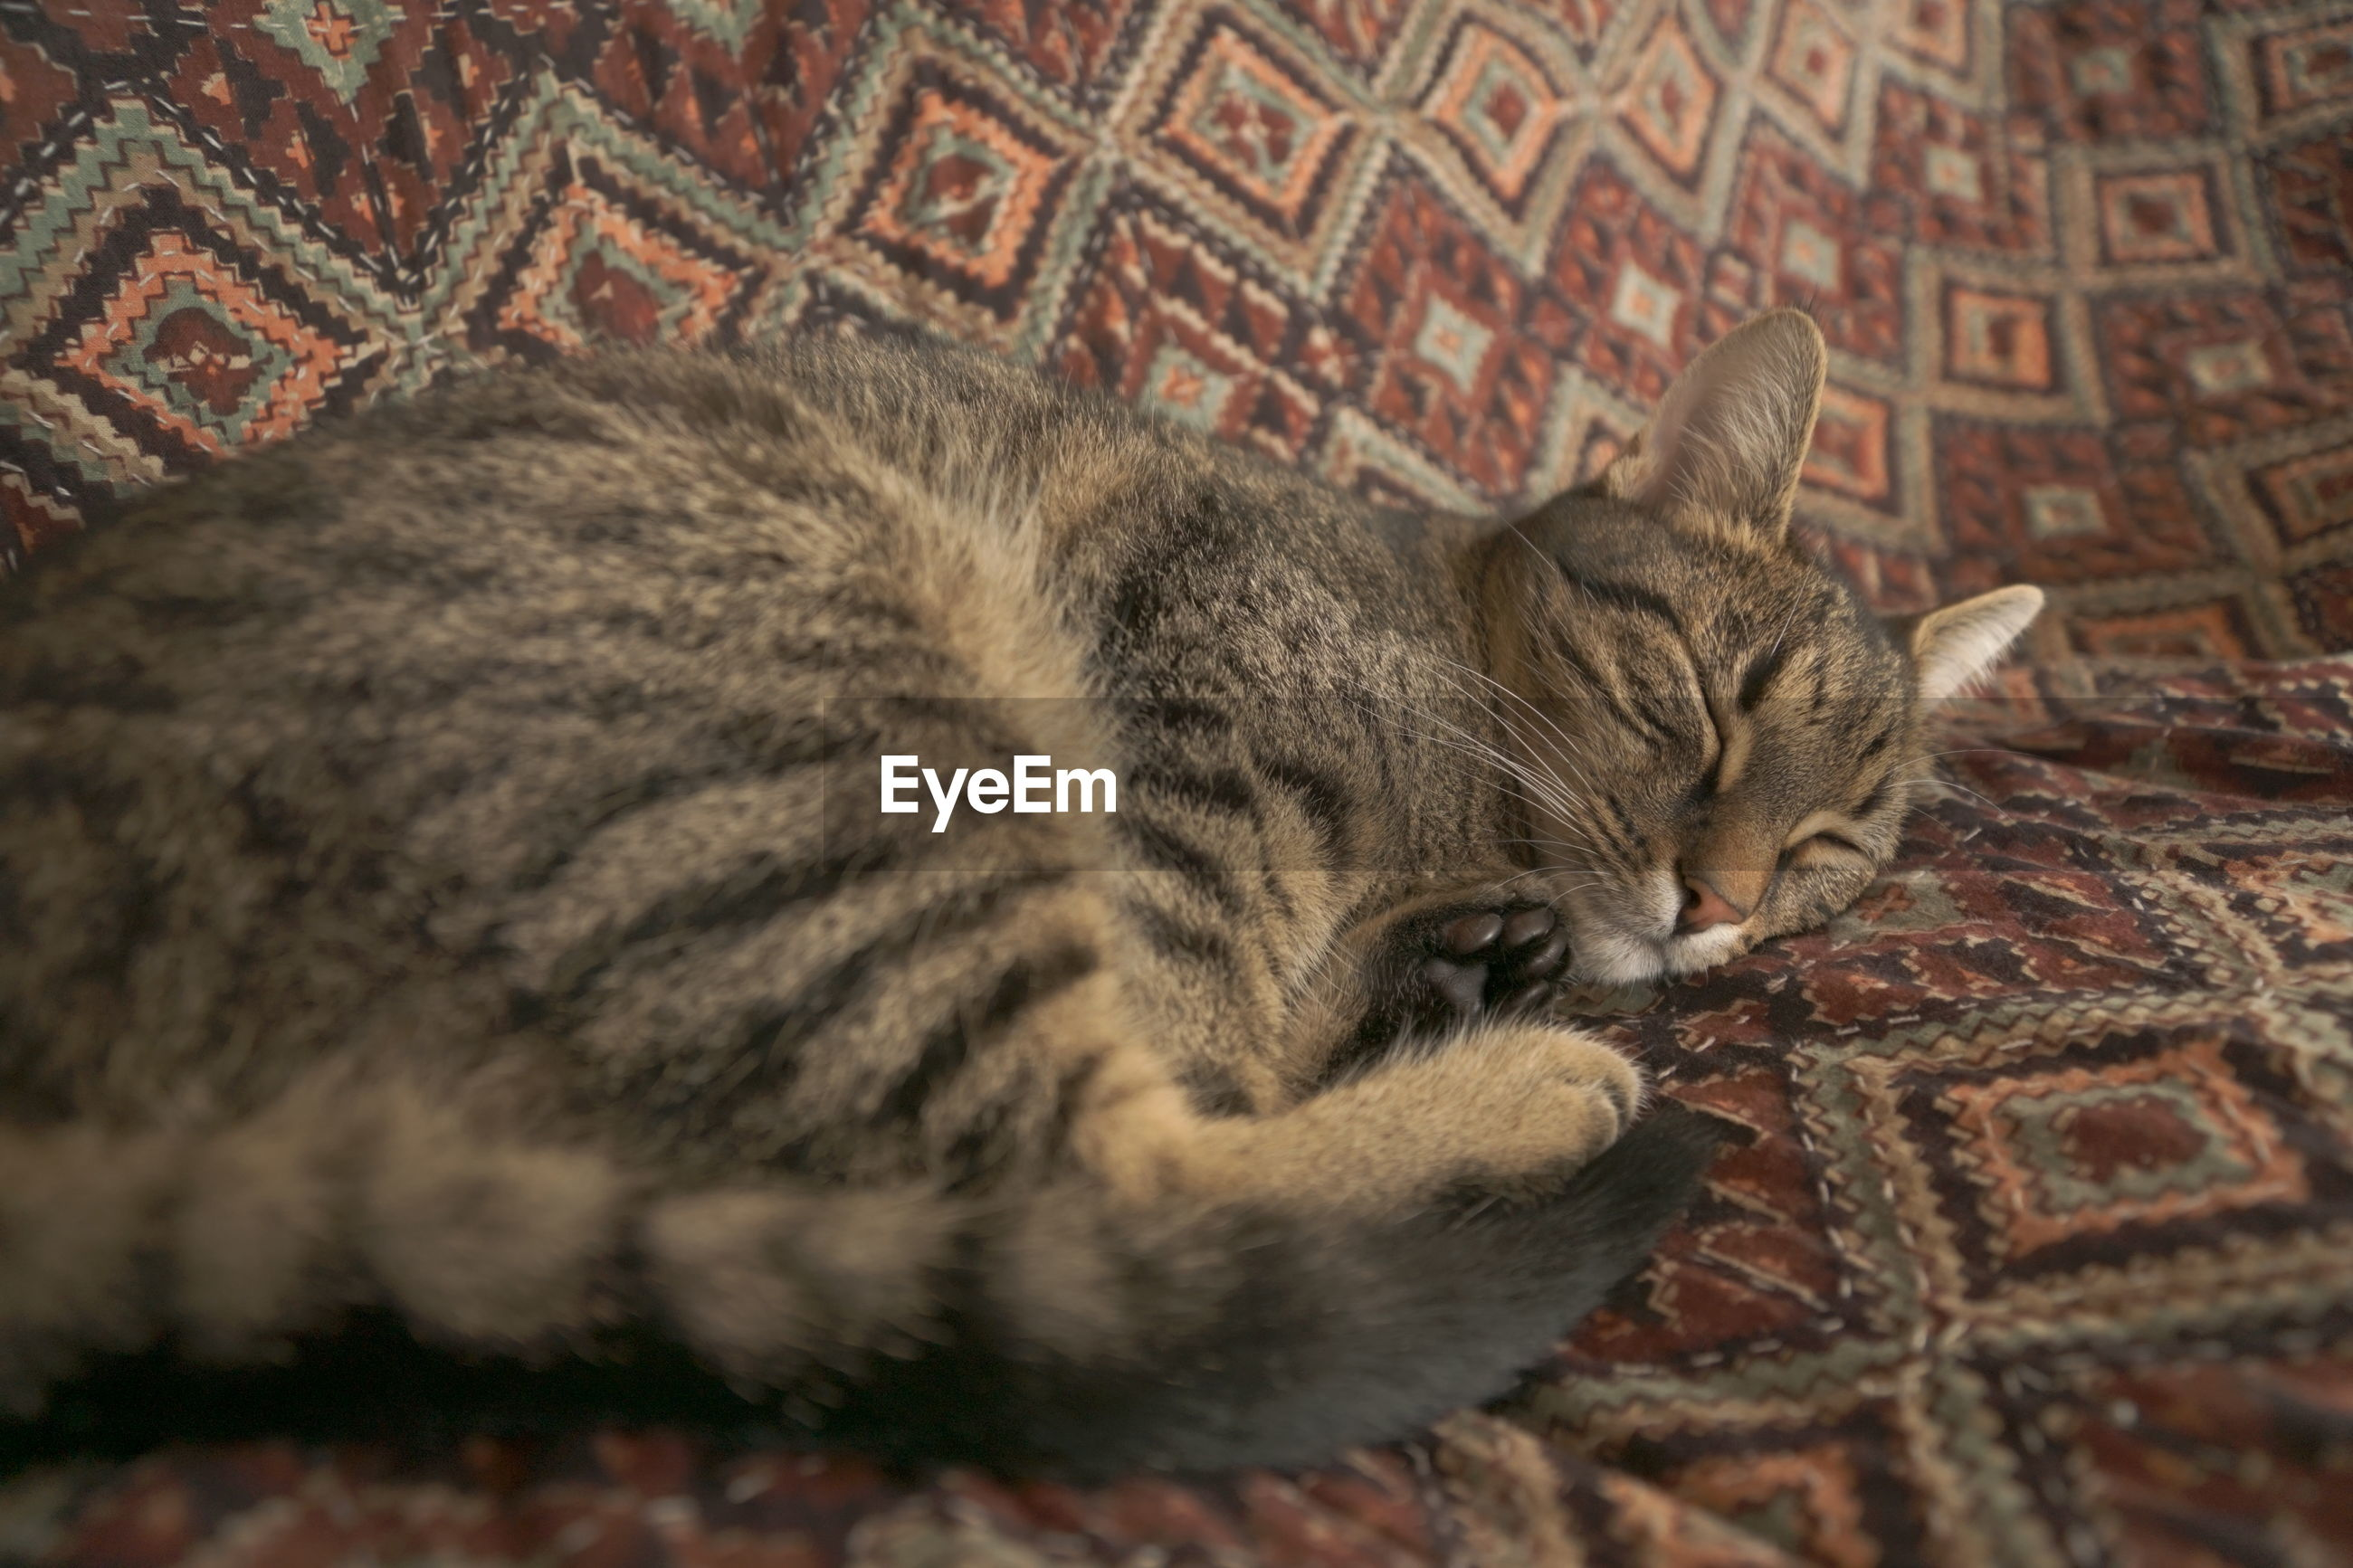 CLOSE-UP OF A CAT SLEEPING ON A BED